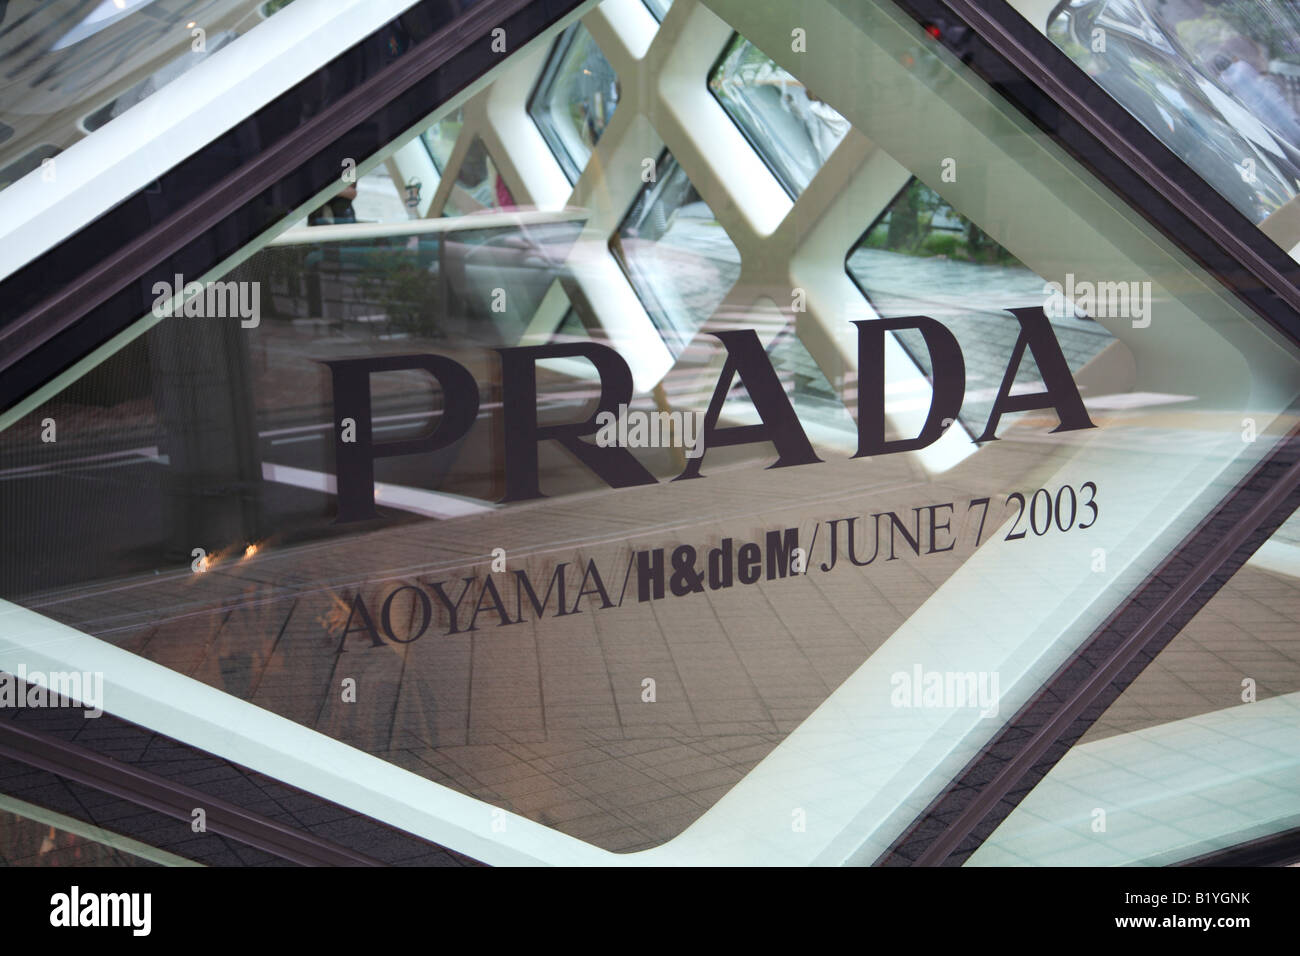 Prada-Showroom in Aoyama Tokio Japan Bauplanung durch Architekten Herzog de  Meuron Stockbild 1b3a90848a